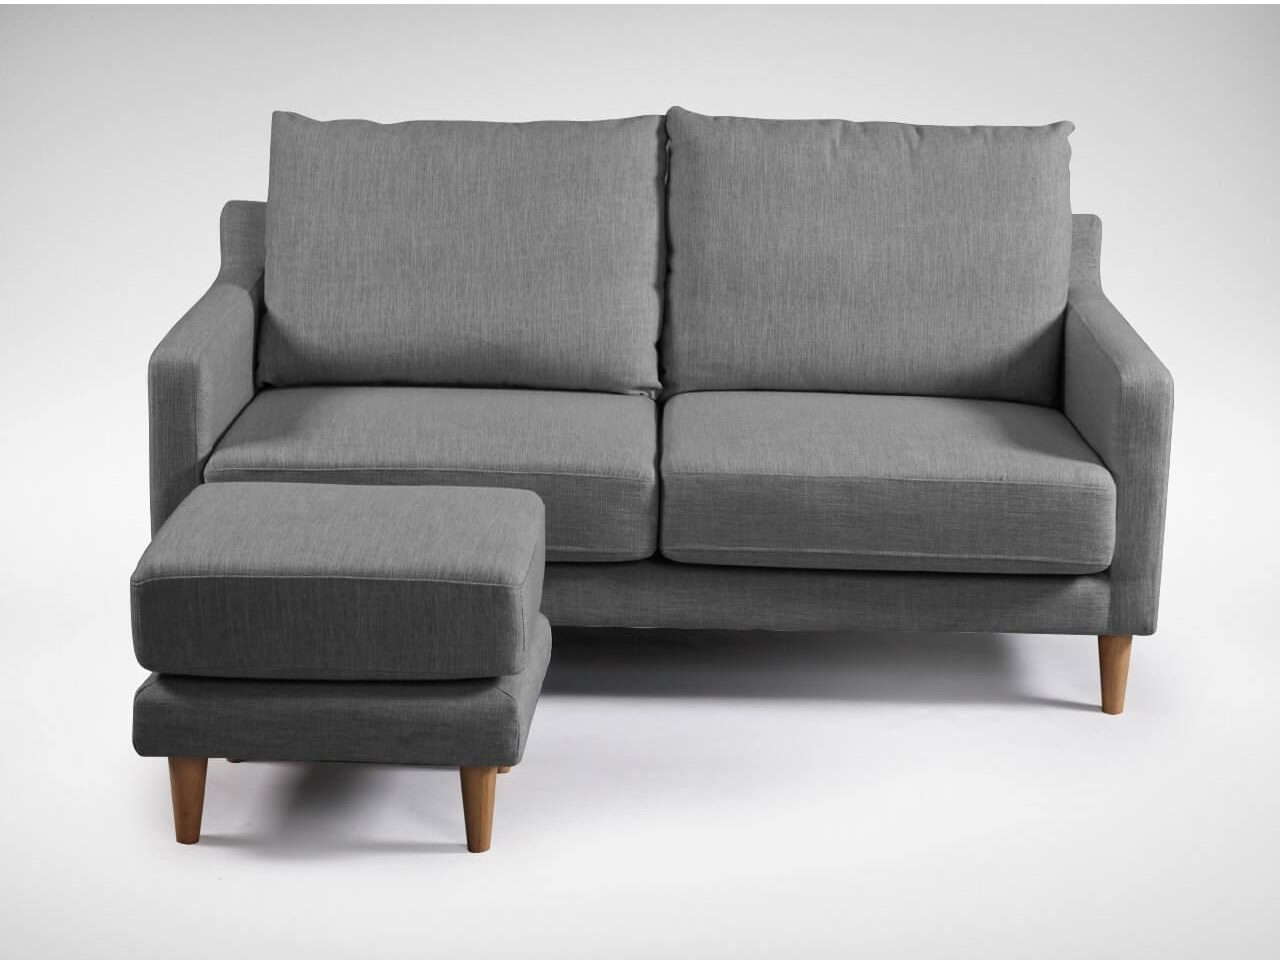 3-Seater Sofa with Leg Rest - Comfort Furniture